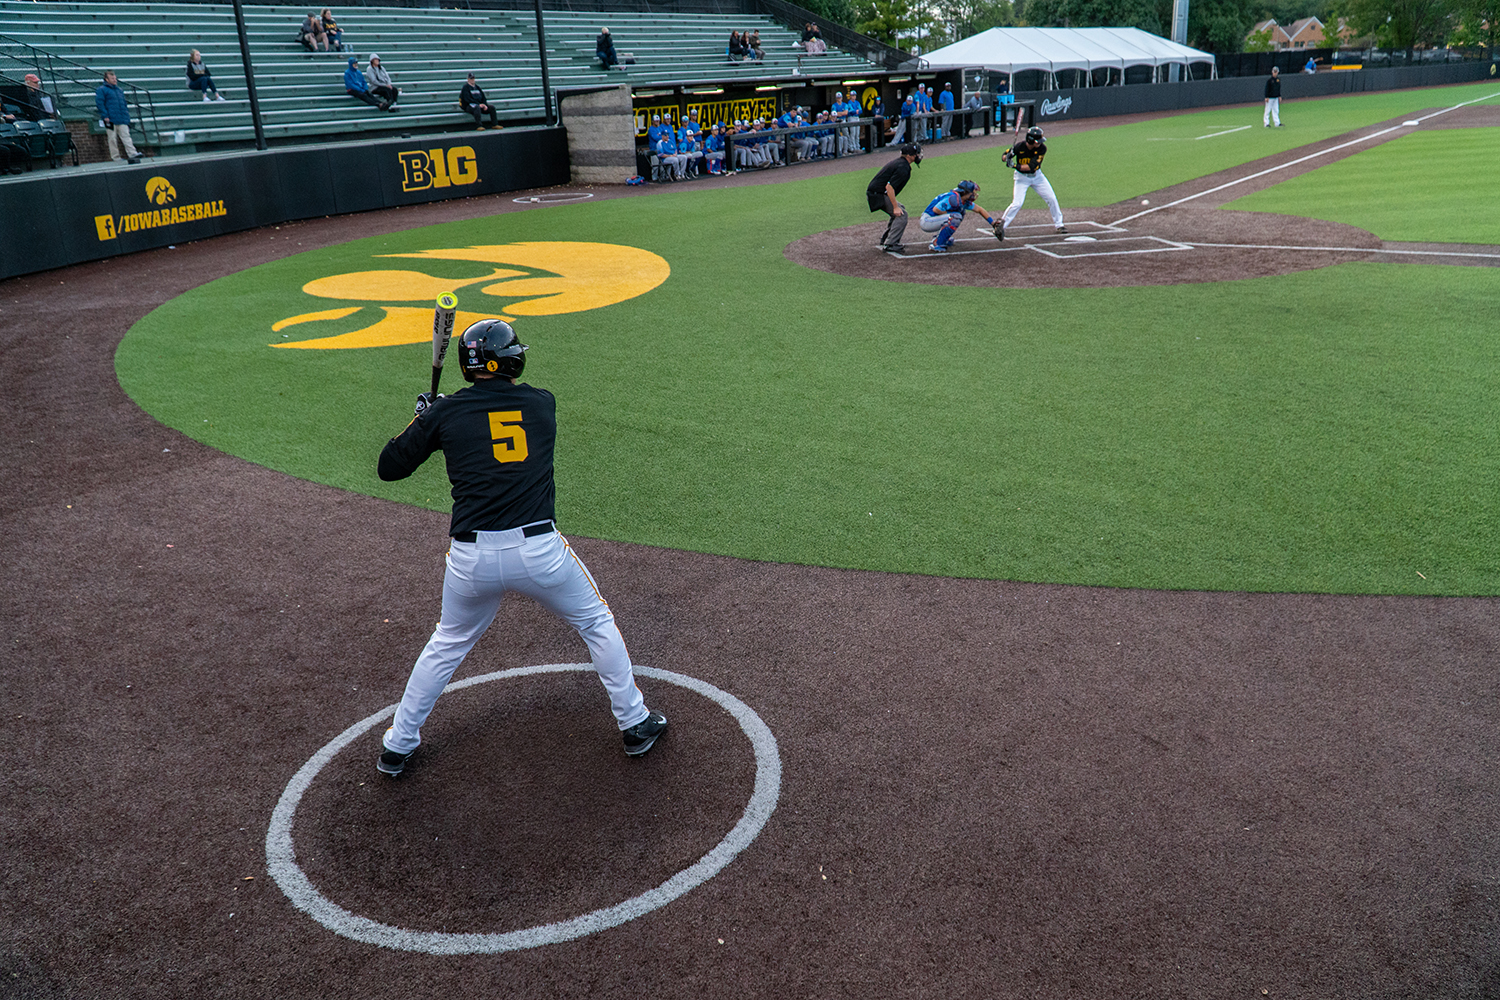 Outfielder Zeb Adreon next at bat during Iowa's game against Ontario Blue Jays at Duane Banks Field on Sept. 21, 2018.